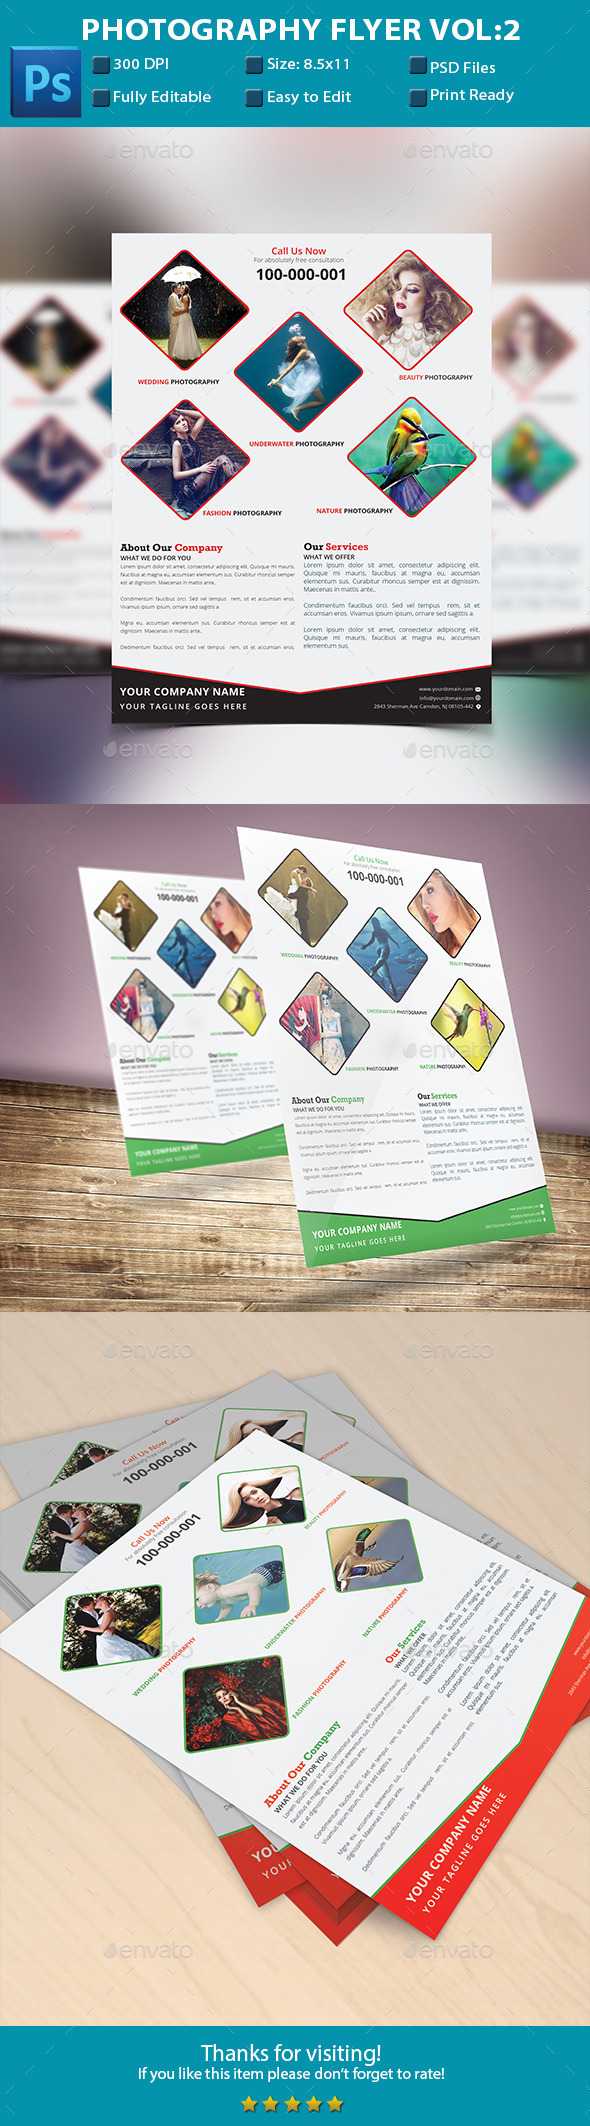 Photography Flyer Vol:2  - Creative Business Cards